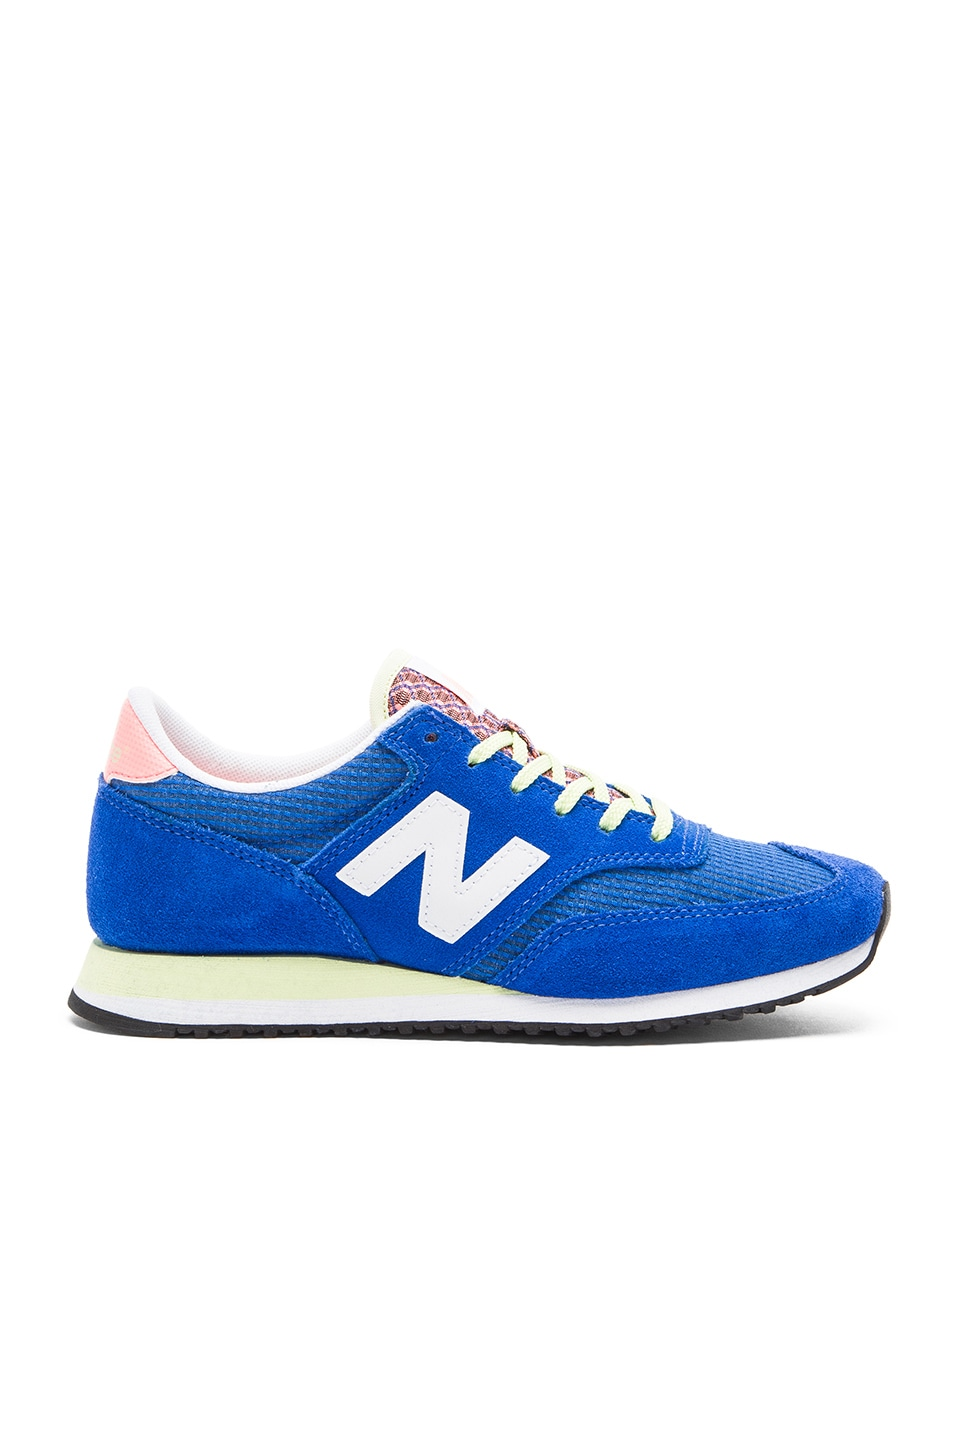 New Balance 620 Sneaker in Electric Blue